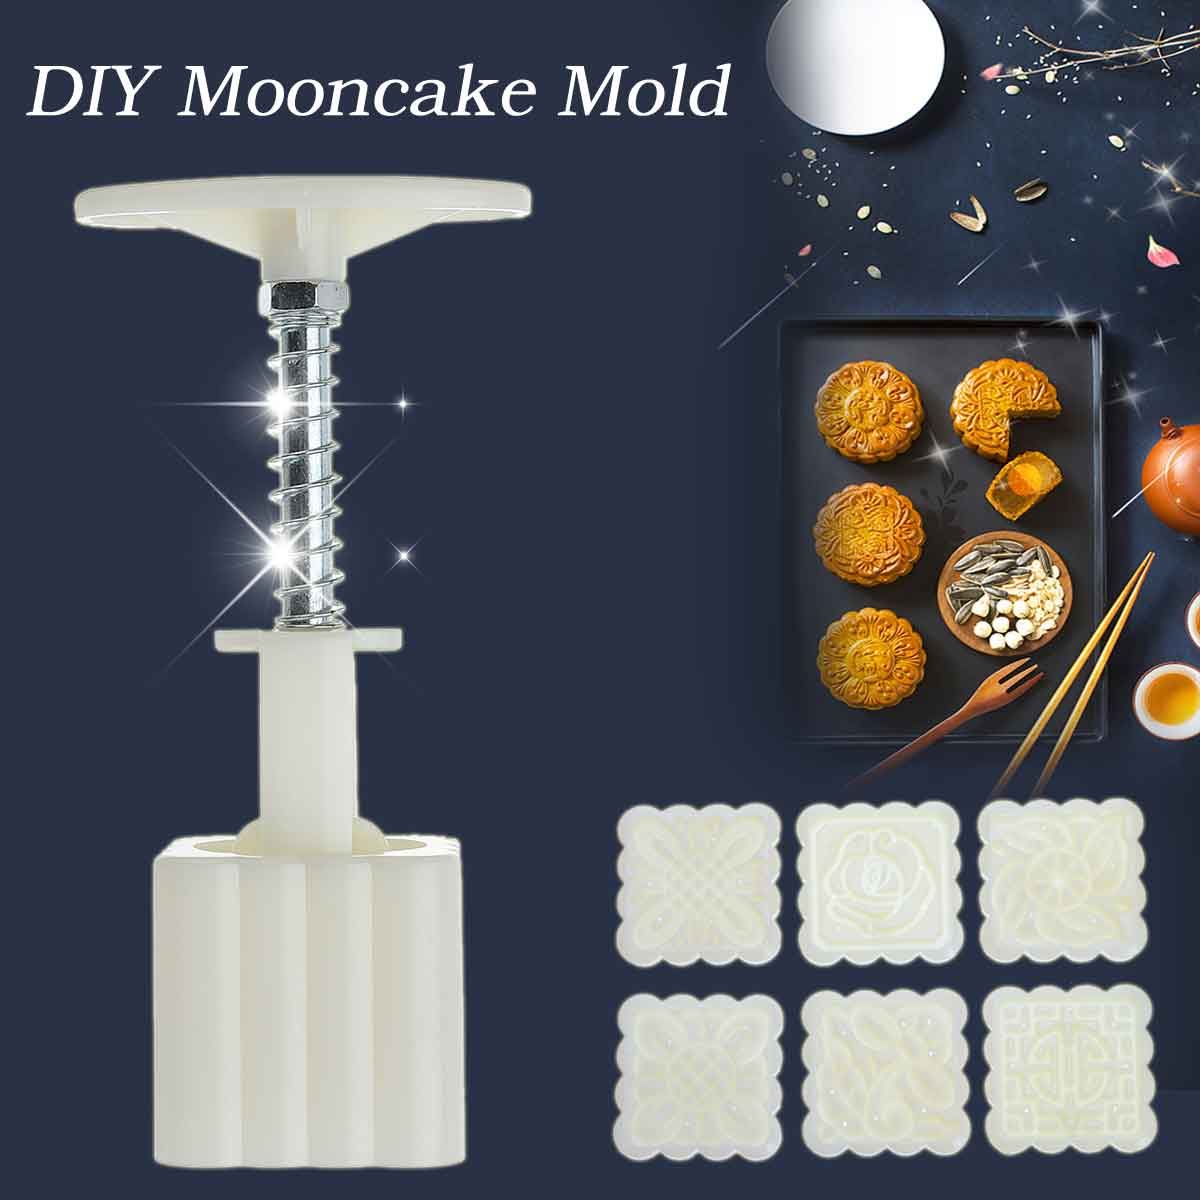 6 Flower Stamps Moon Cake Mould DIY Square Round Mooncake Baking Mold Decor Tool